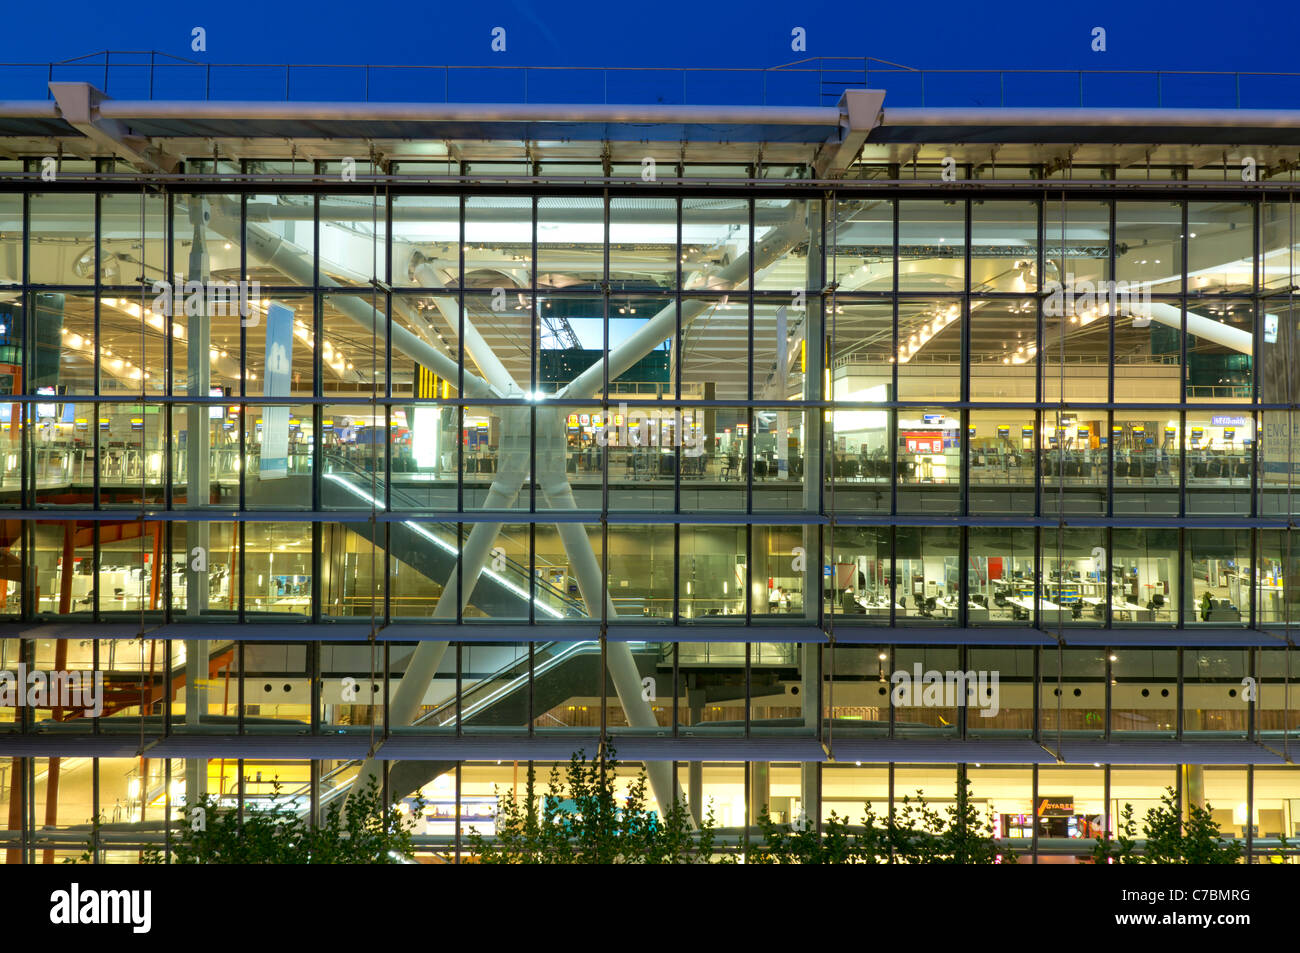 uk, england, Heathrow airport terminal 5 building dusk - Stock Image